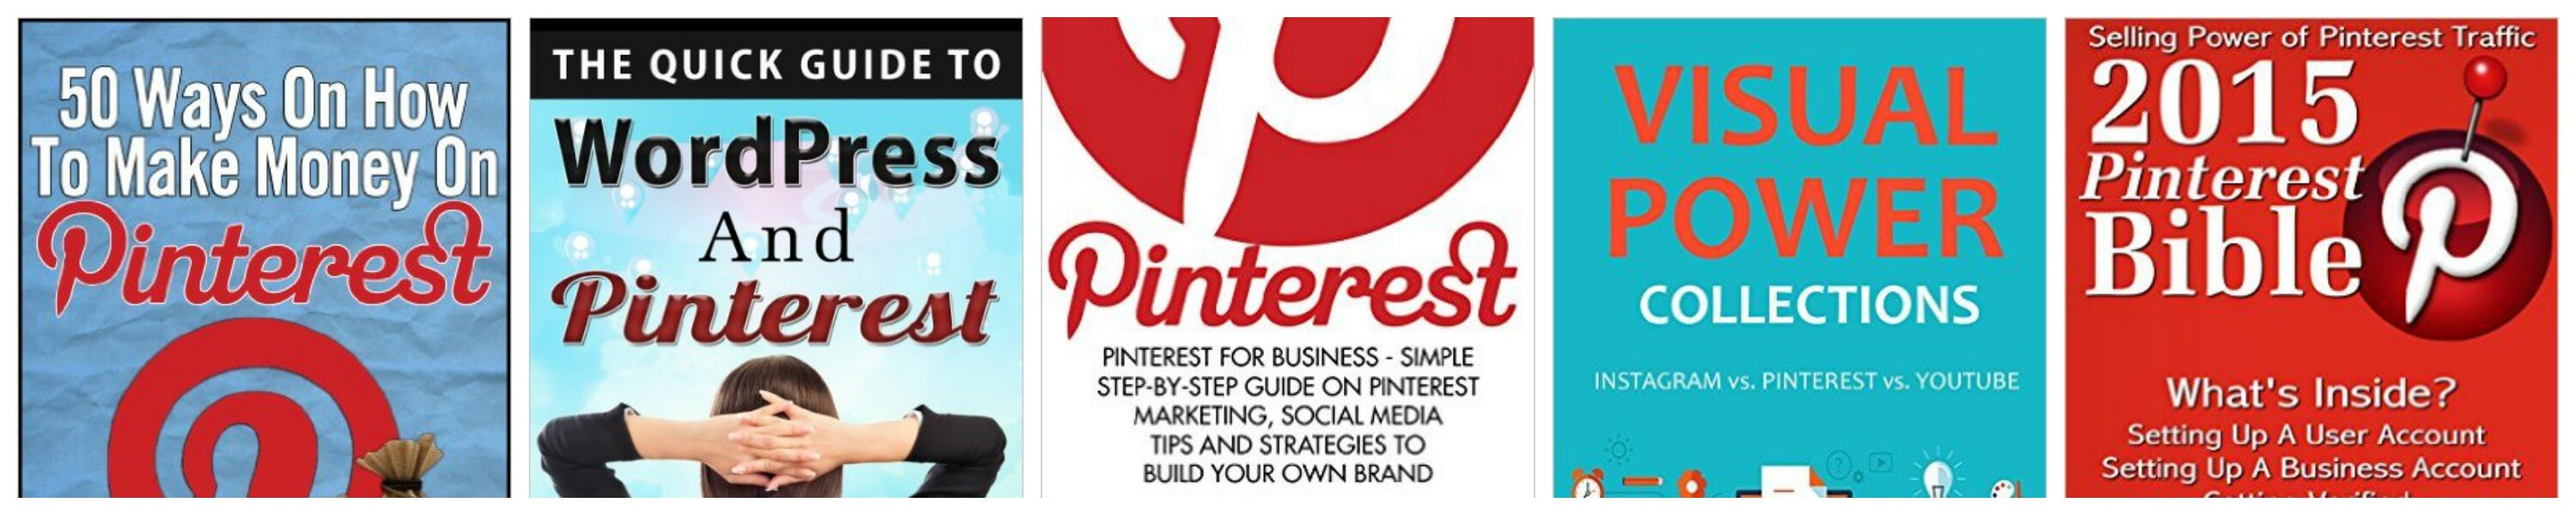 Thinking Outside The Sandbox: Business PicMonkey-Collage1 5 FREE Pinterest eBooks Free eBooks